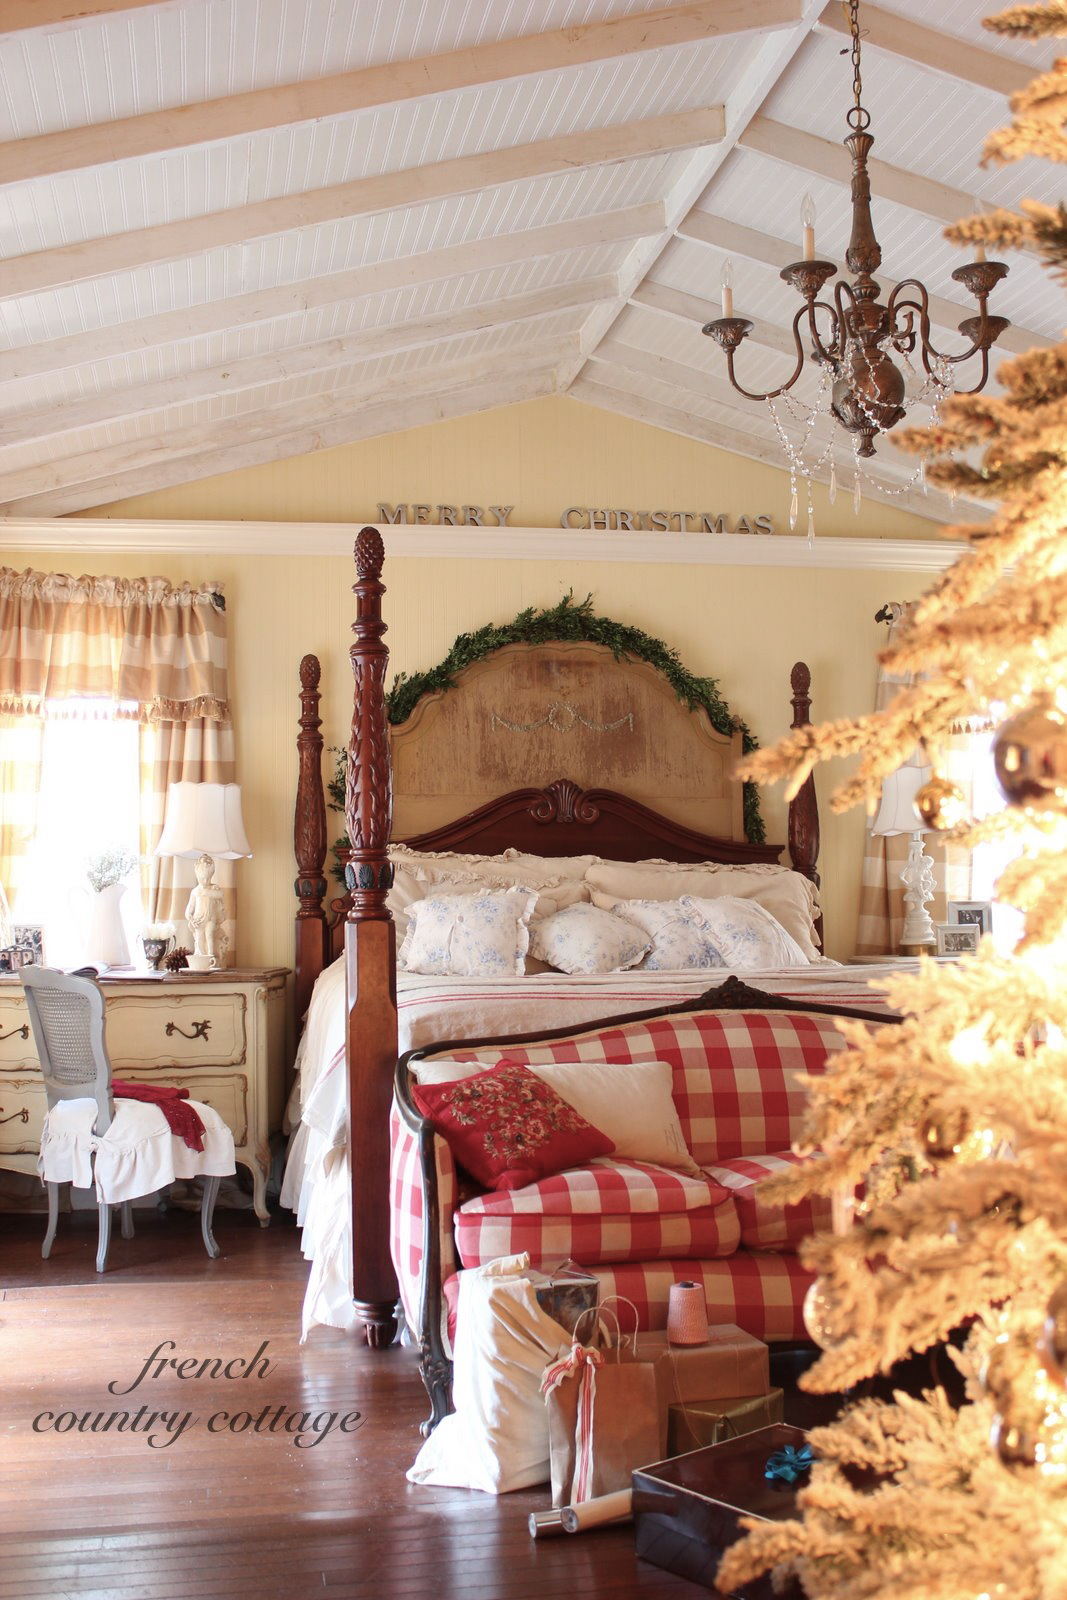 Joyeux Noel Bedroom French Country Cottage